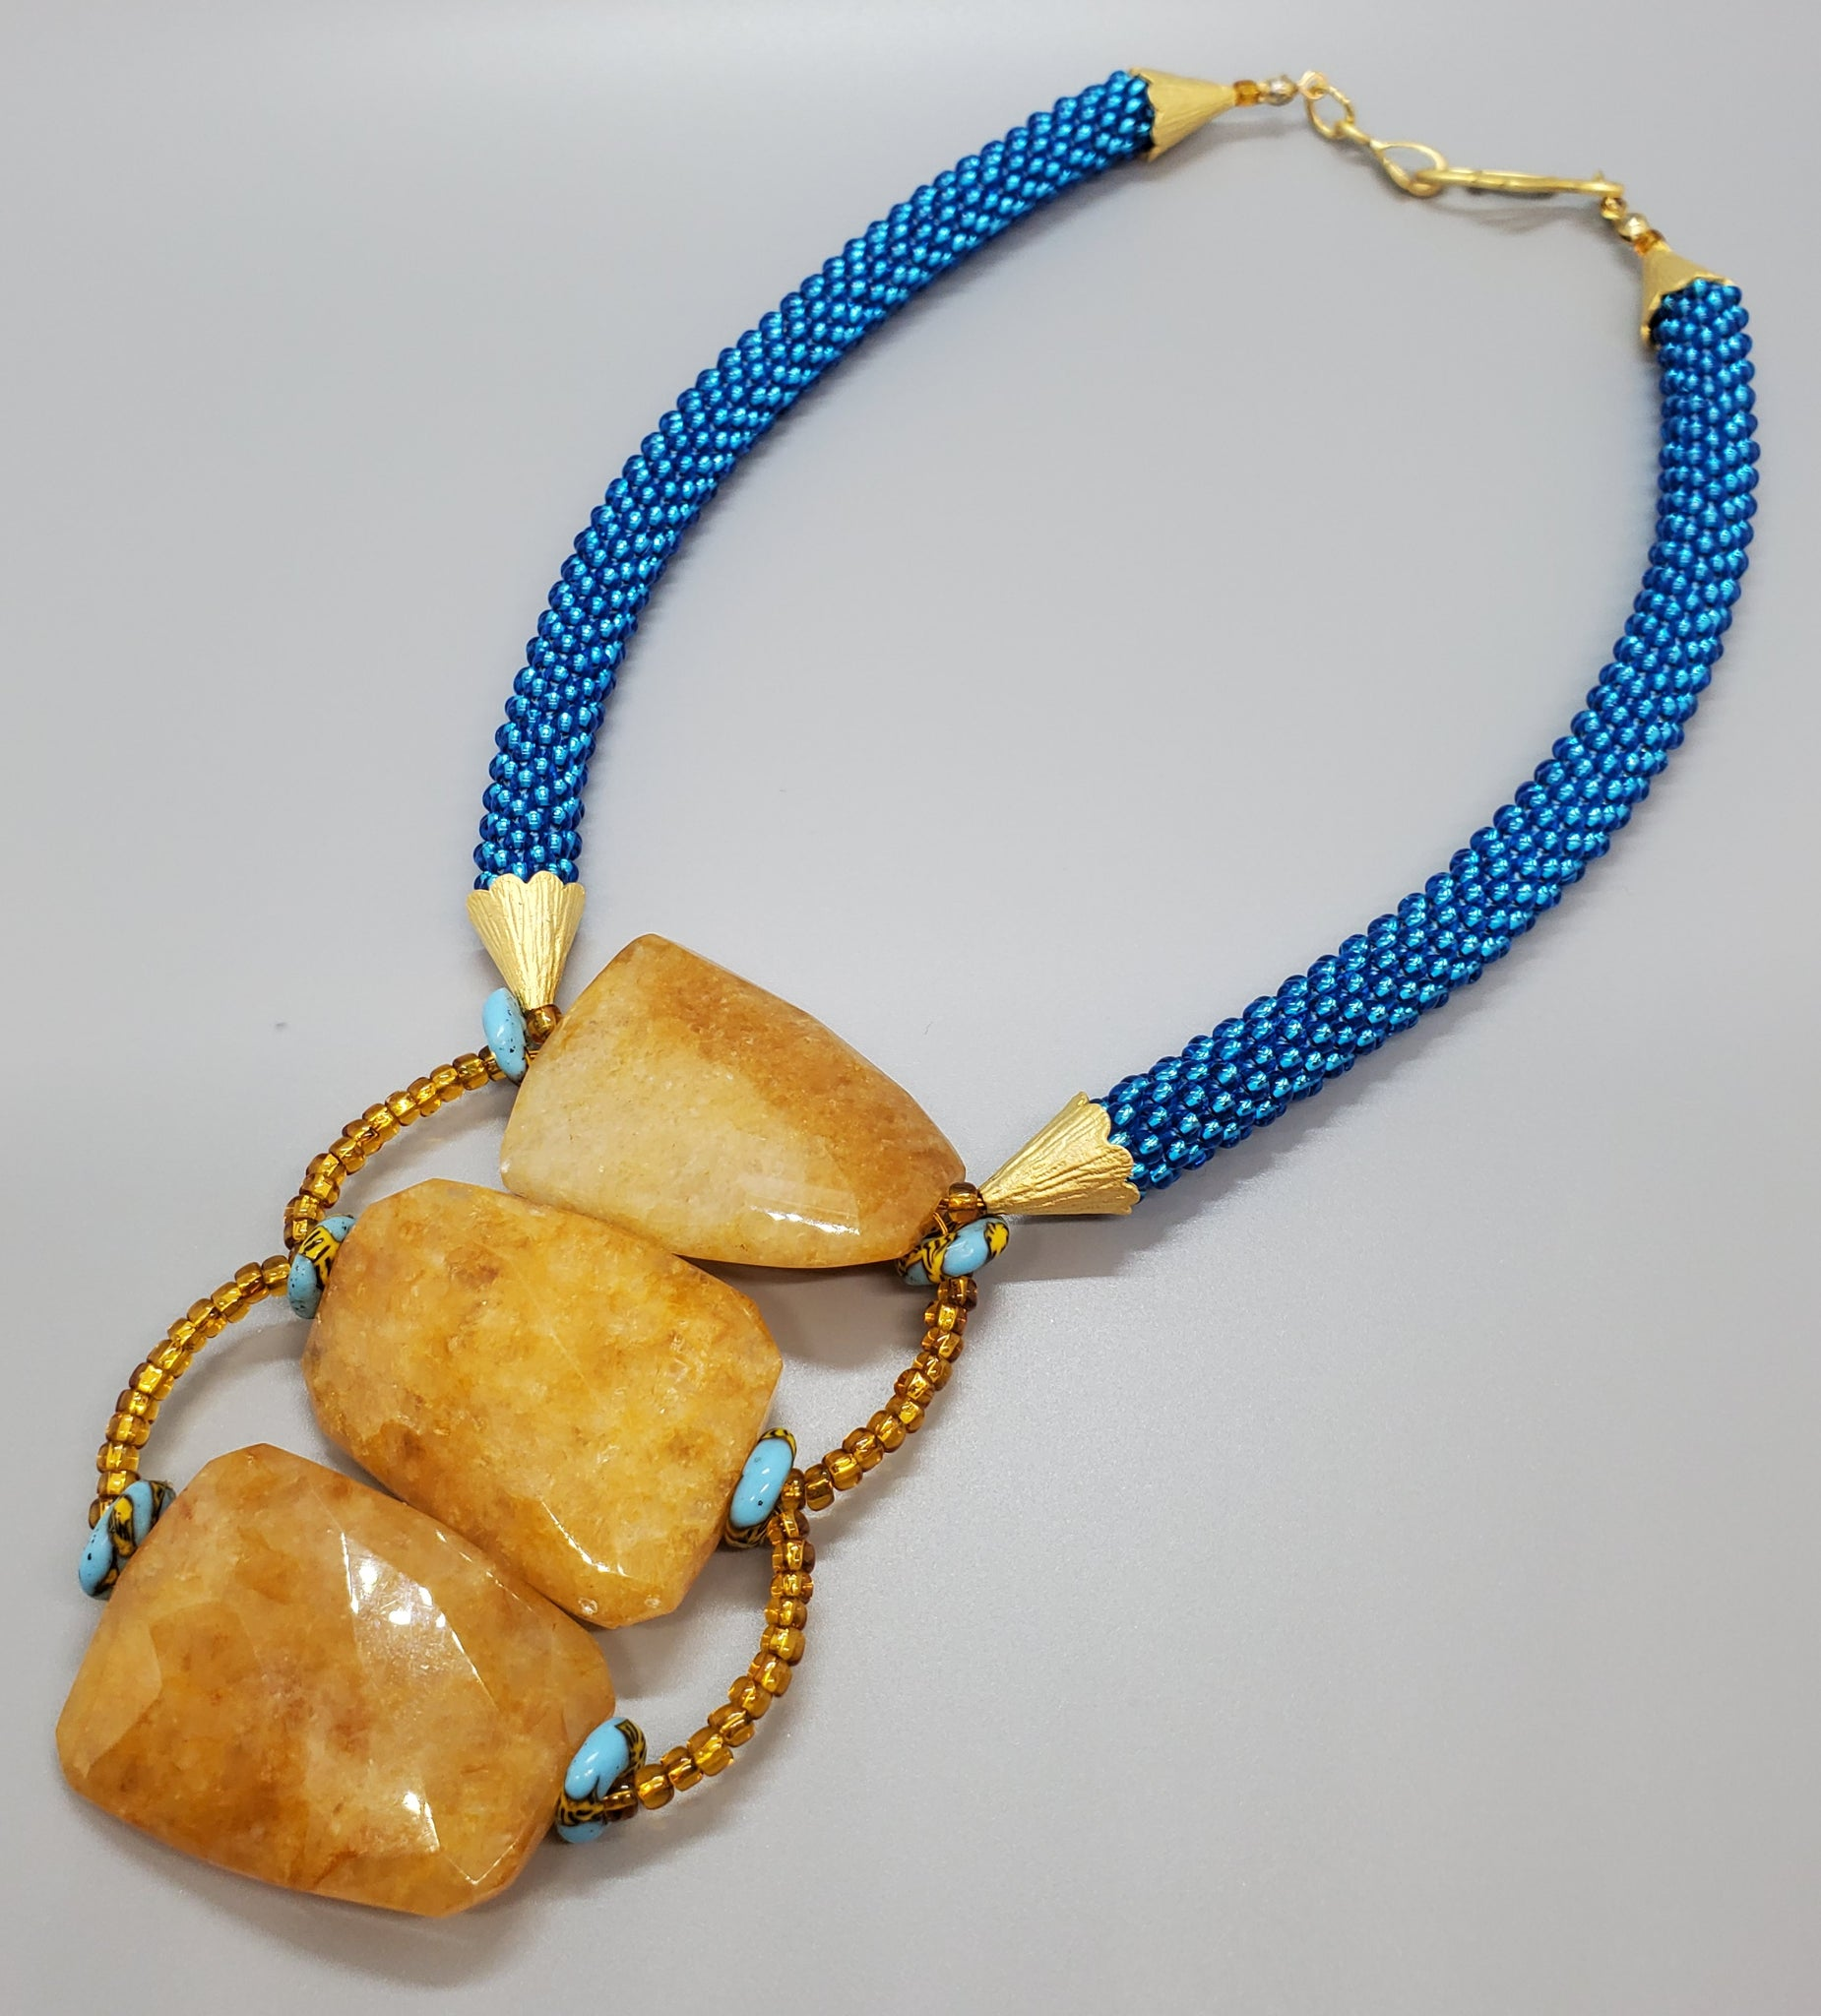 Yellow Jade, Aqua Multi Krobo Beads, Aqua, Topaz Czech Seed Beads, Brass, Beaded Crochet Necklace